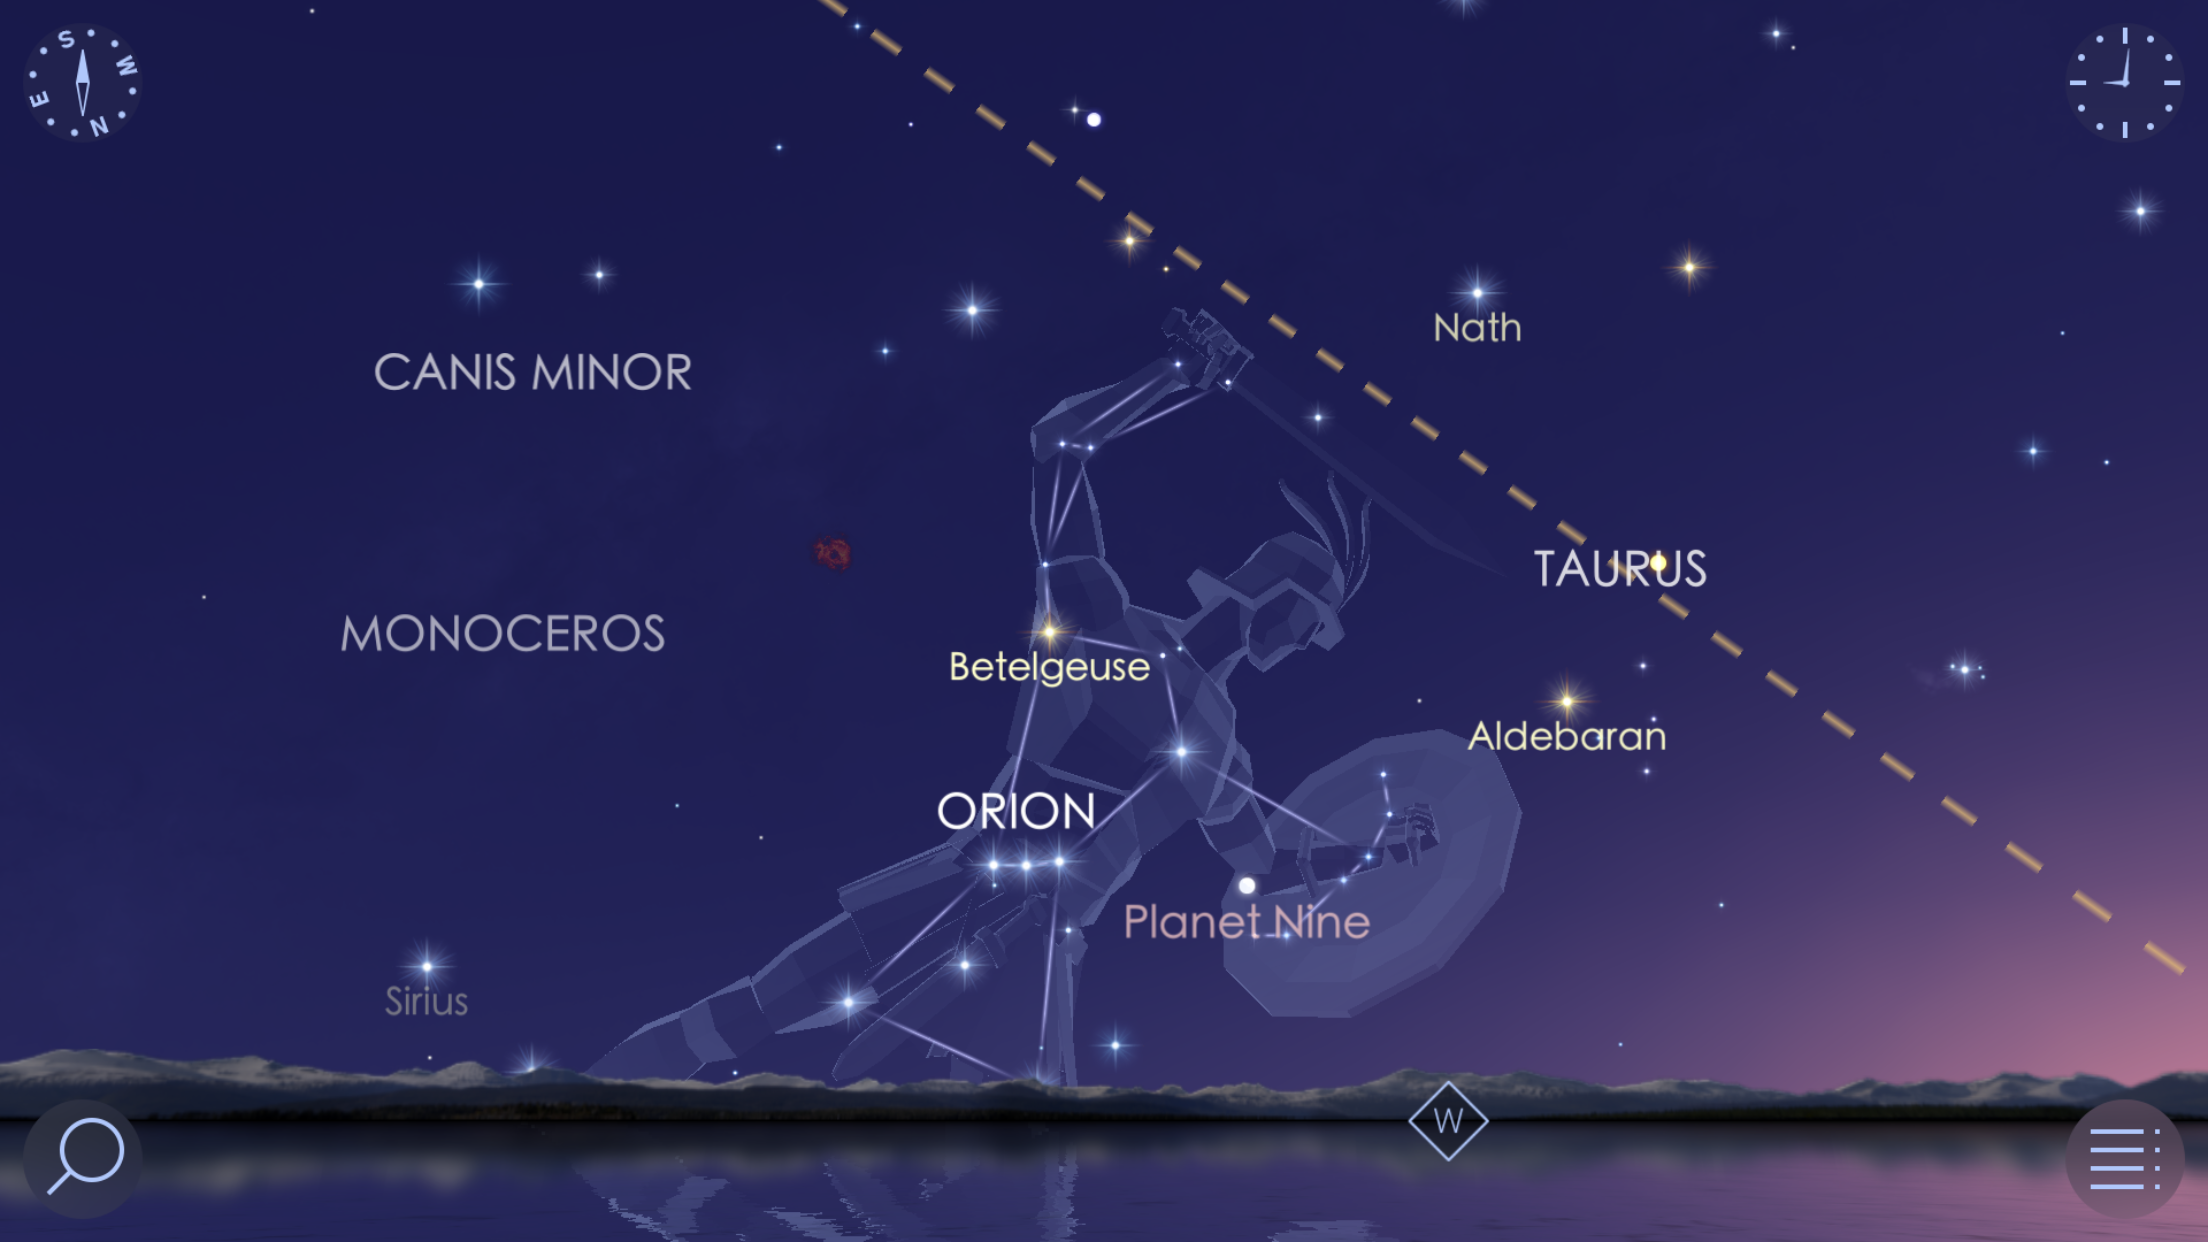 Royal Planets Rule the Evening Sky, the Waning Moon meets